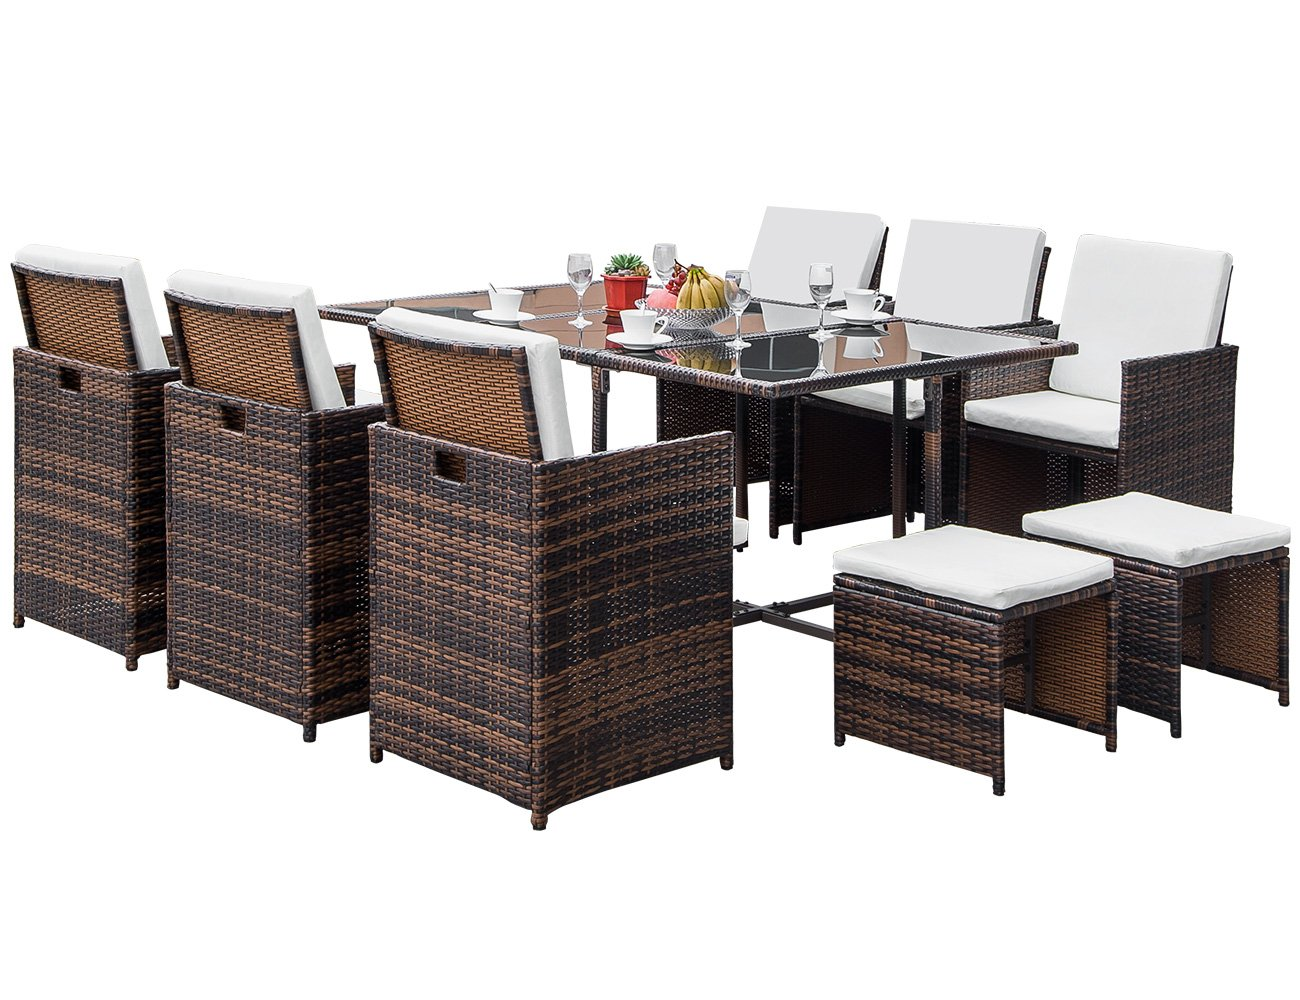 Stupendous Lz Leisure Zone Flieks 11 Piece Patio Furniture Dining Set Outdoor Garden Wicker Rattan Dining Table Chairs Conversation Set With Cushions Brown Home Interior And Landscaping Fragforummapetitesourisinfo